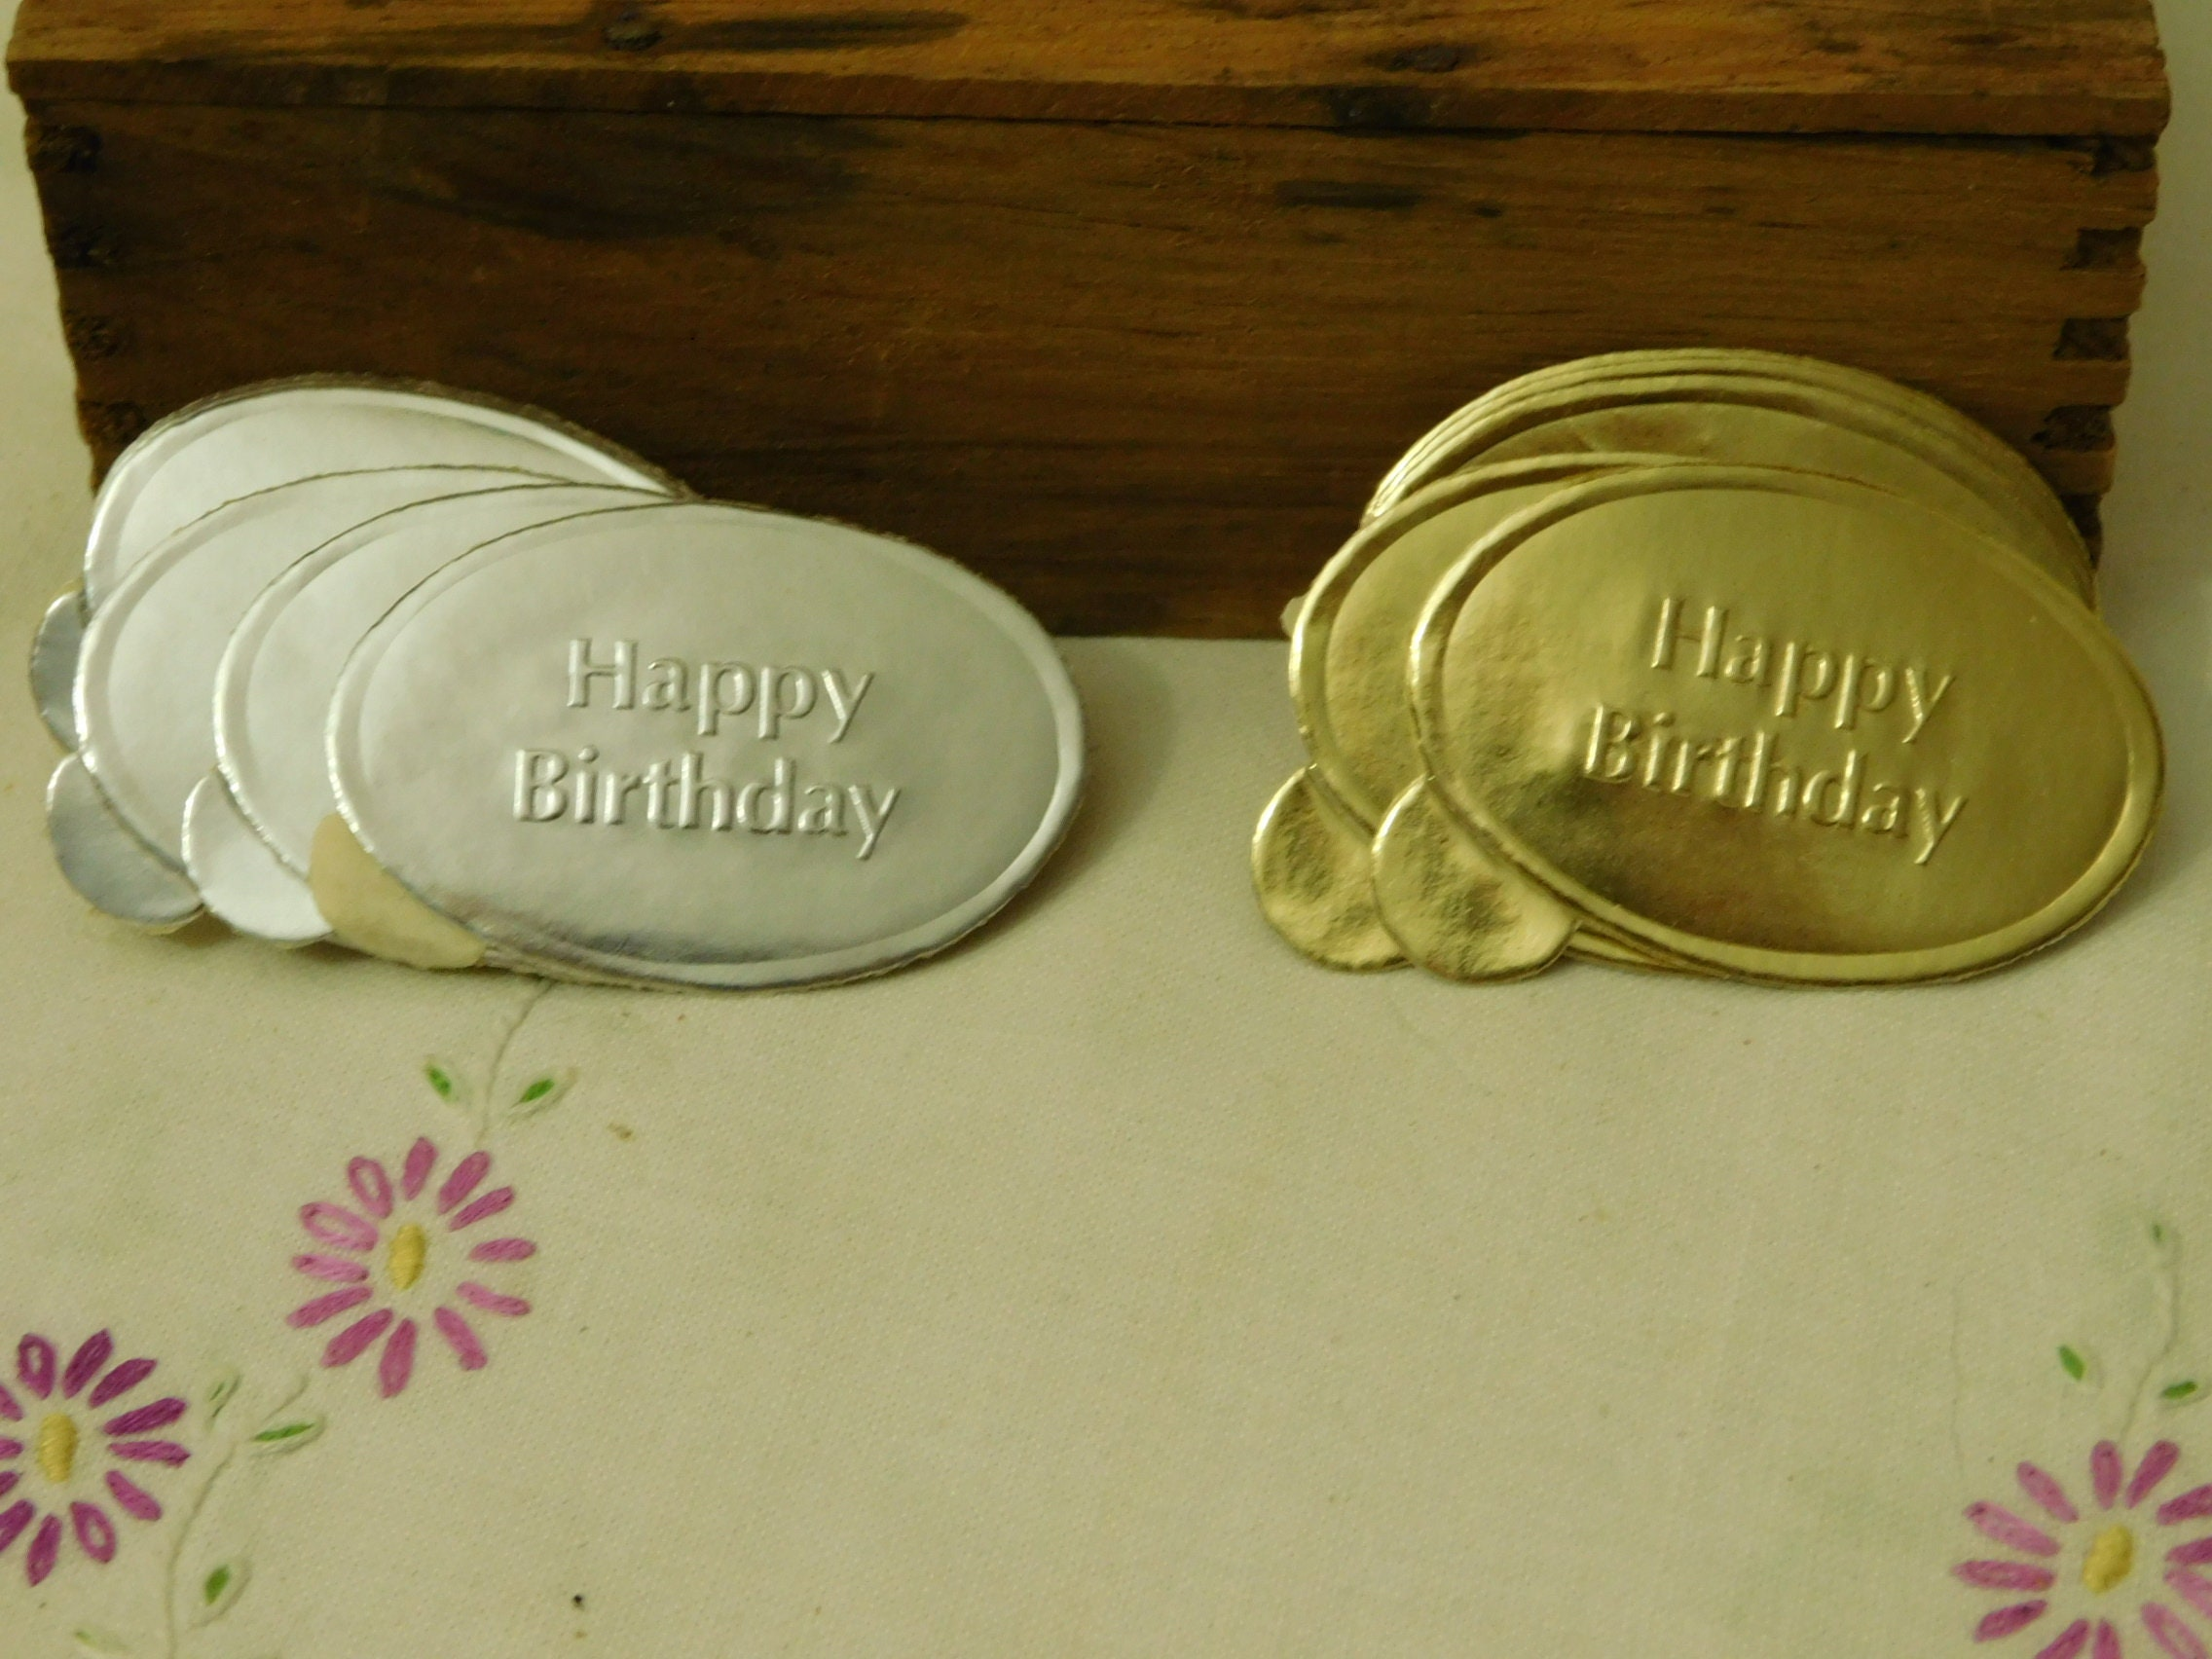 Vintage foil stickers silver and gold happy birthday embossed die cut seals scrapbook material 1950s stickers package decor